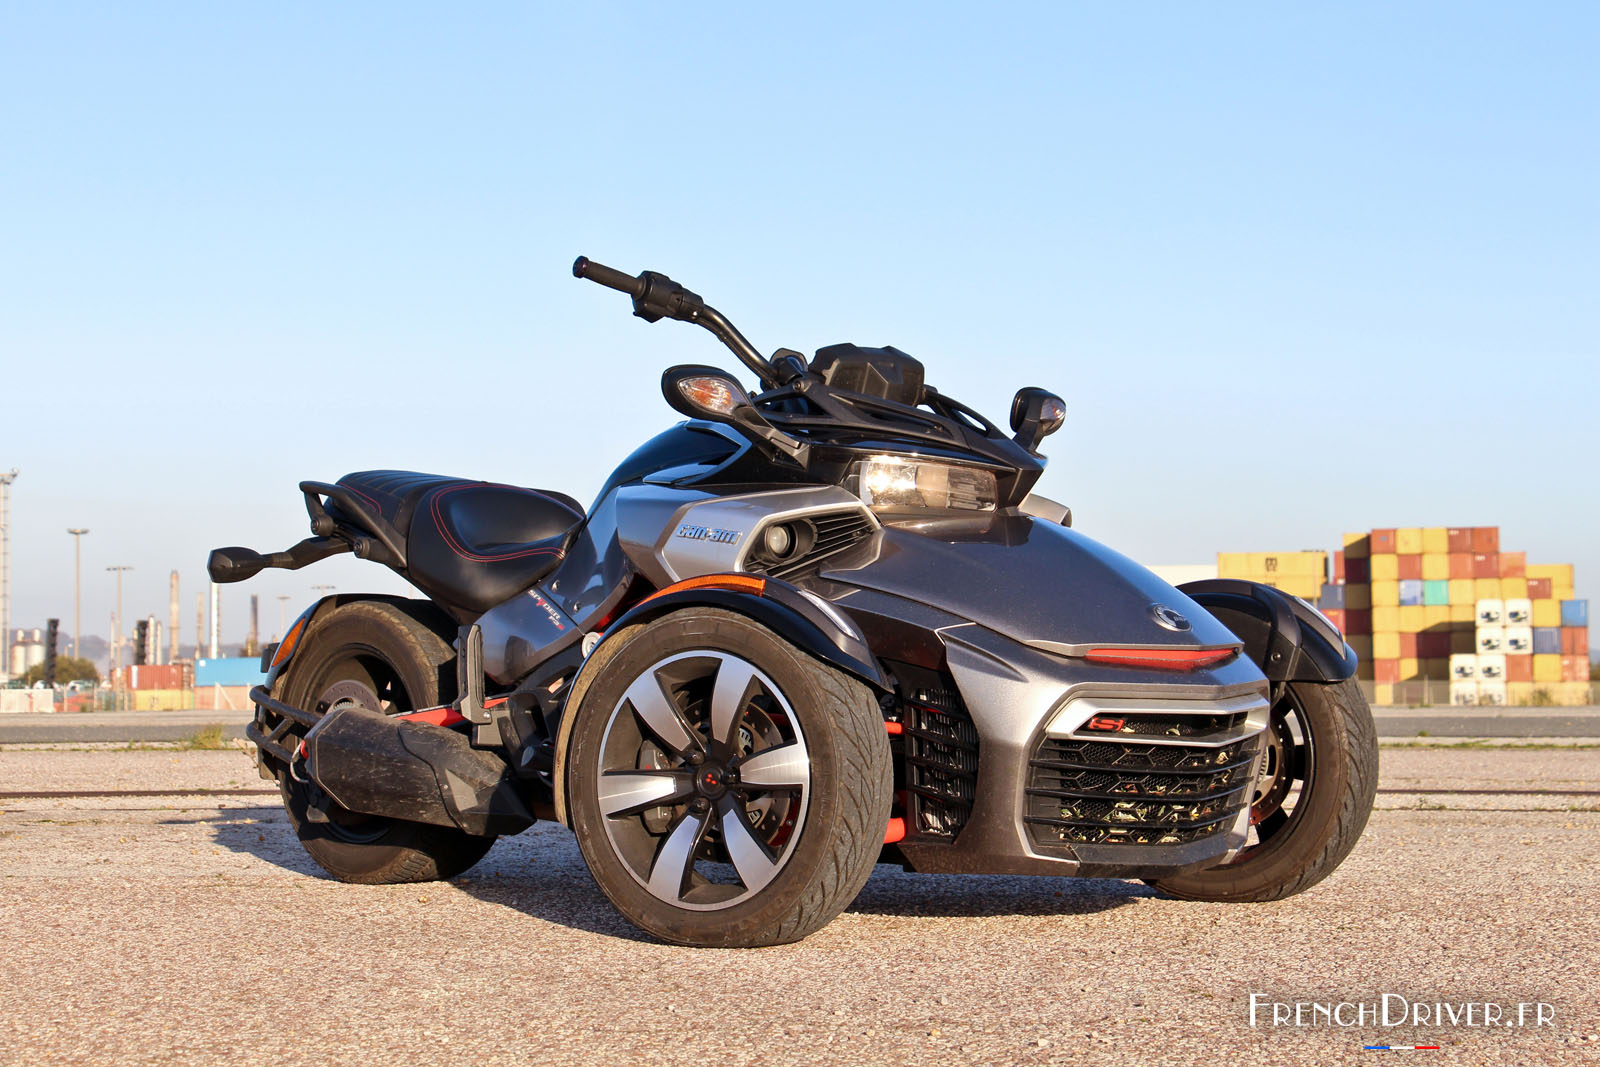 essai du can am spyder f3 s trois cylindres pour trois roues french driver. Black Bedroom Furniture Sets. Home Design Ideas